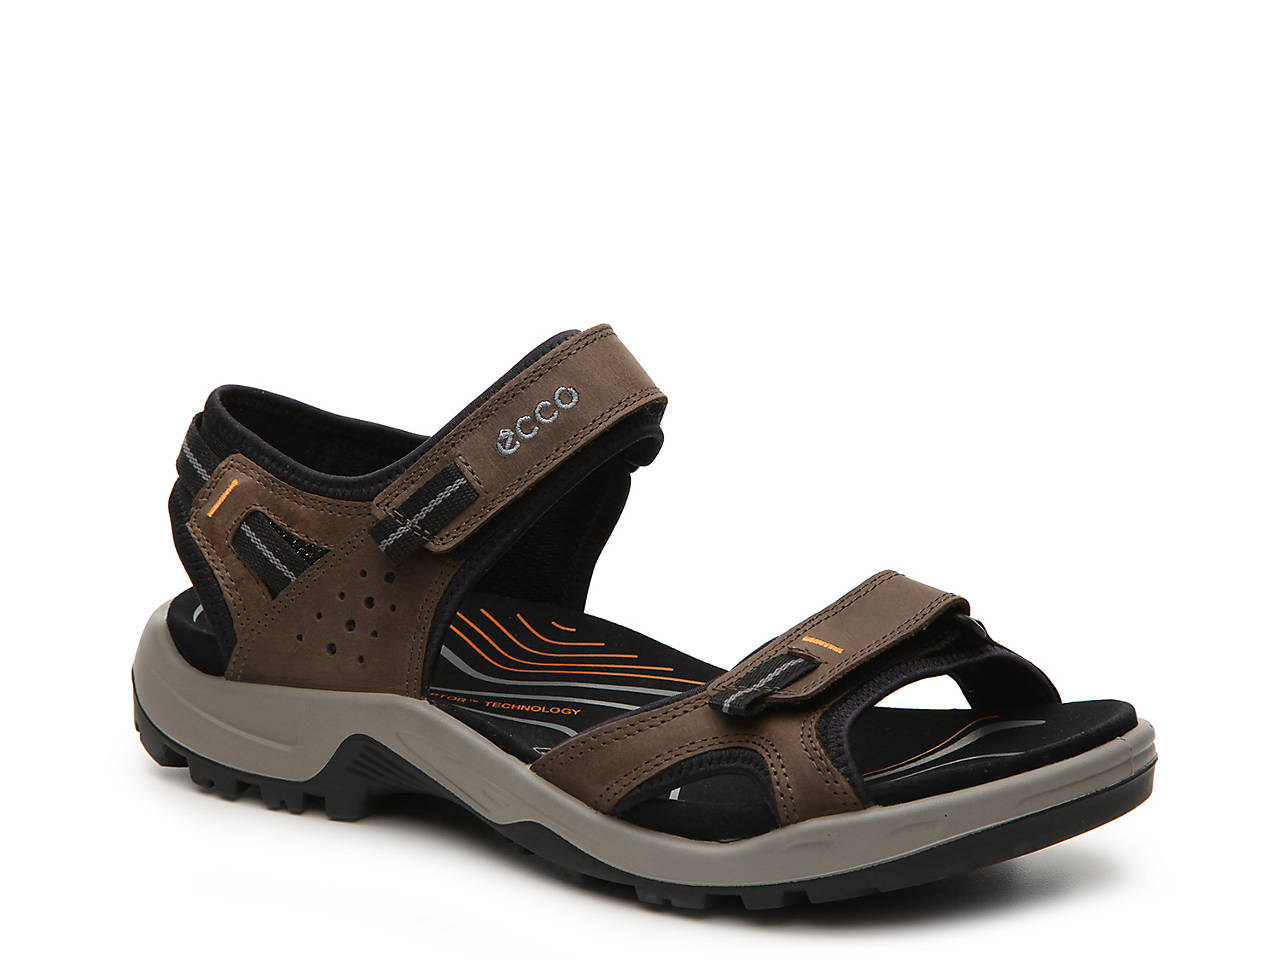 f0559bfe397 ECCO Yucatan II Sandal Men s Shoes